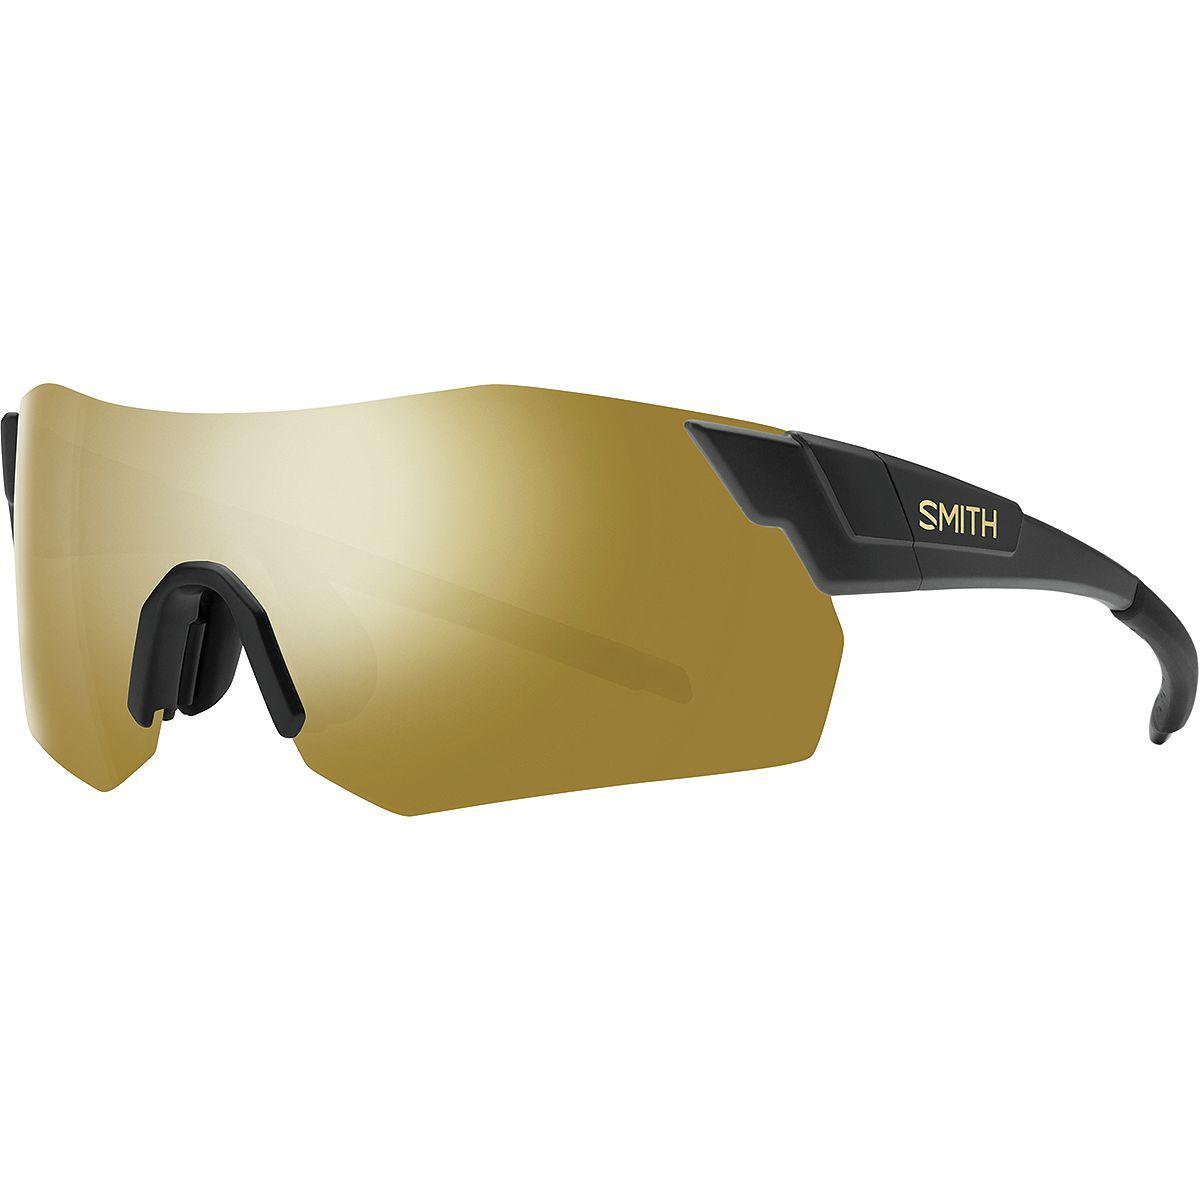 92733a78ab Smith - Green Pivlock Arena Max Chromapop Sunglasses for Men - Lyst. View  fullscreen